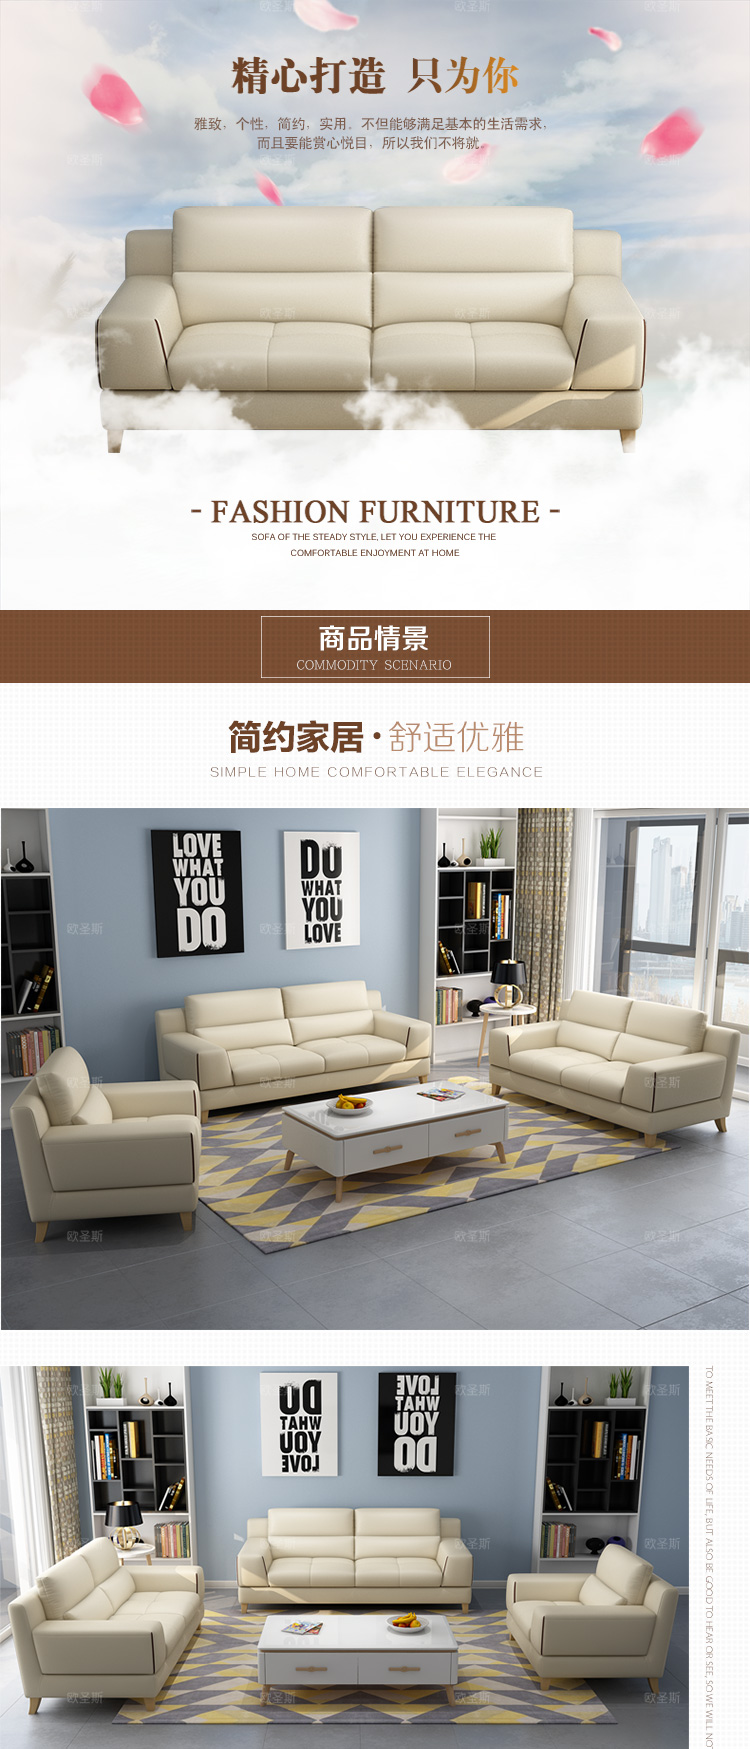 Klassische Sofas You Can Assemble Us 950 2017 New Coming North European Style Simple Deisign Livingroom Furniture Chesterfield Leather Sofa Sets With High Wood Legs 667a In Living